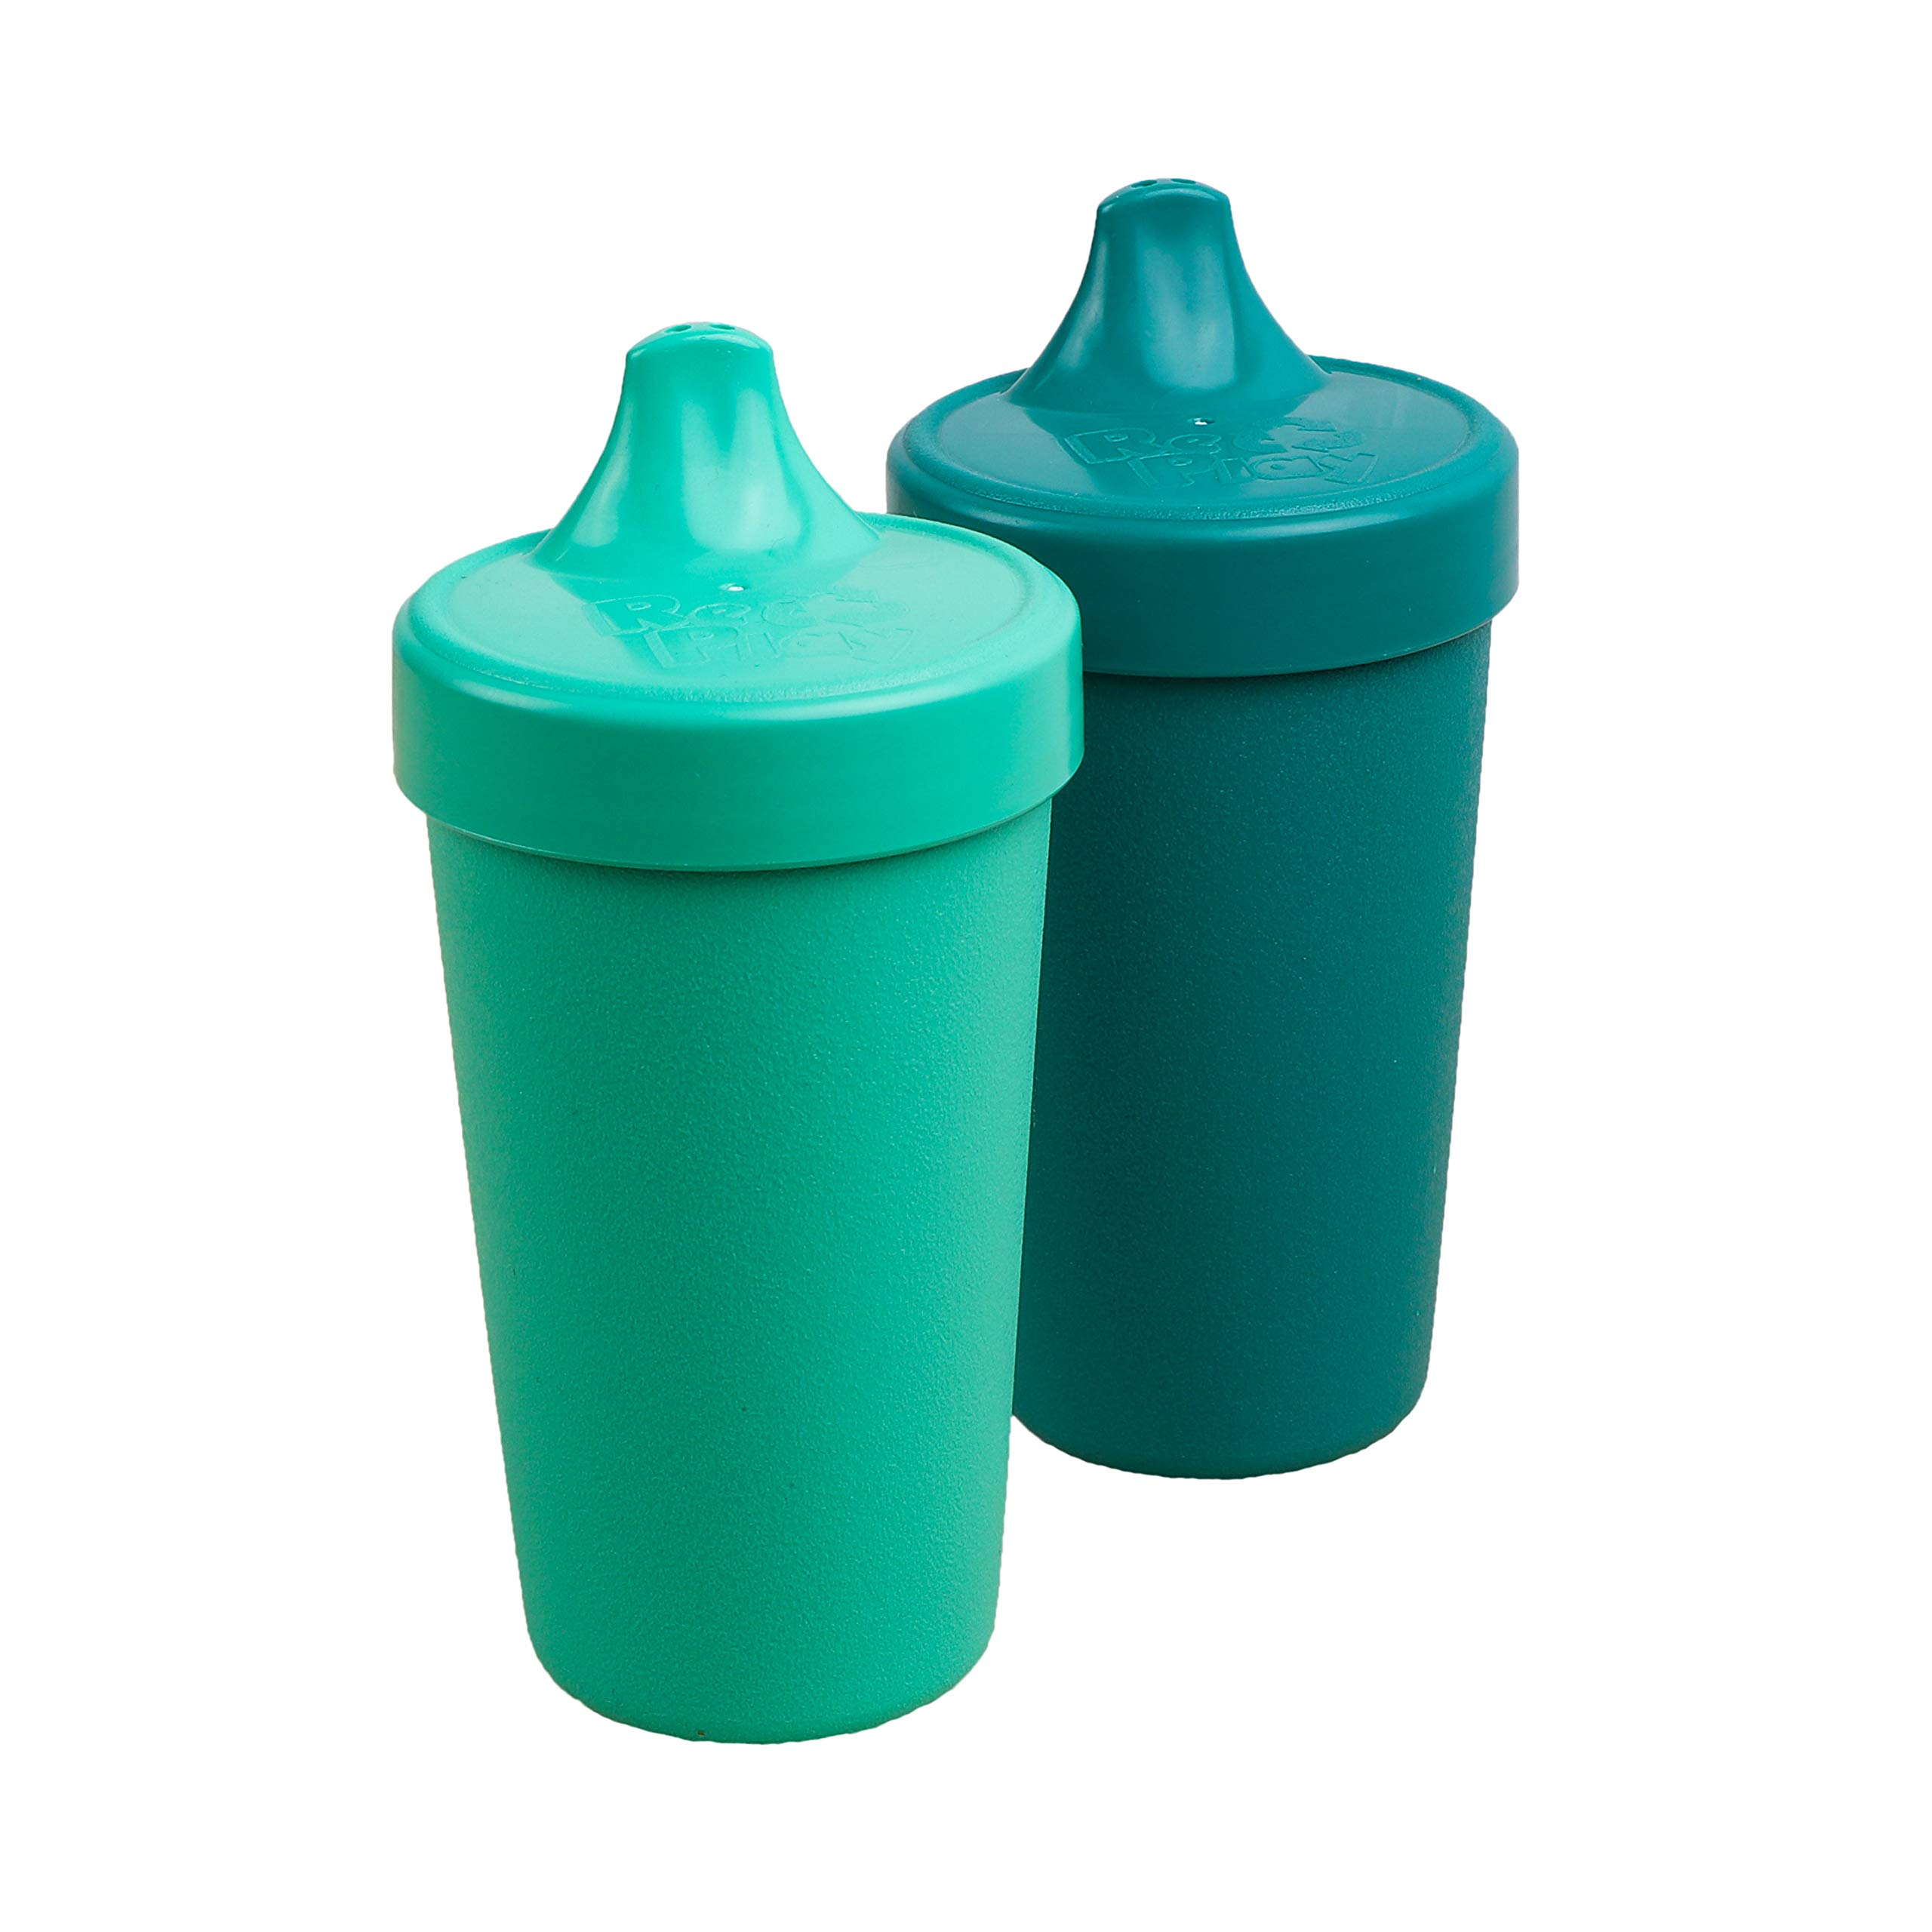 Re-Play Made in USA 2pk Toddler Feeding No Spill Sippy Cups | 1 Piece Silicone Easy Clean Valve | Eco Friendly Heavyweight Recycled Milk Jugs are Virtually Indestructible | Aqua/Teal